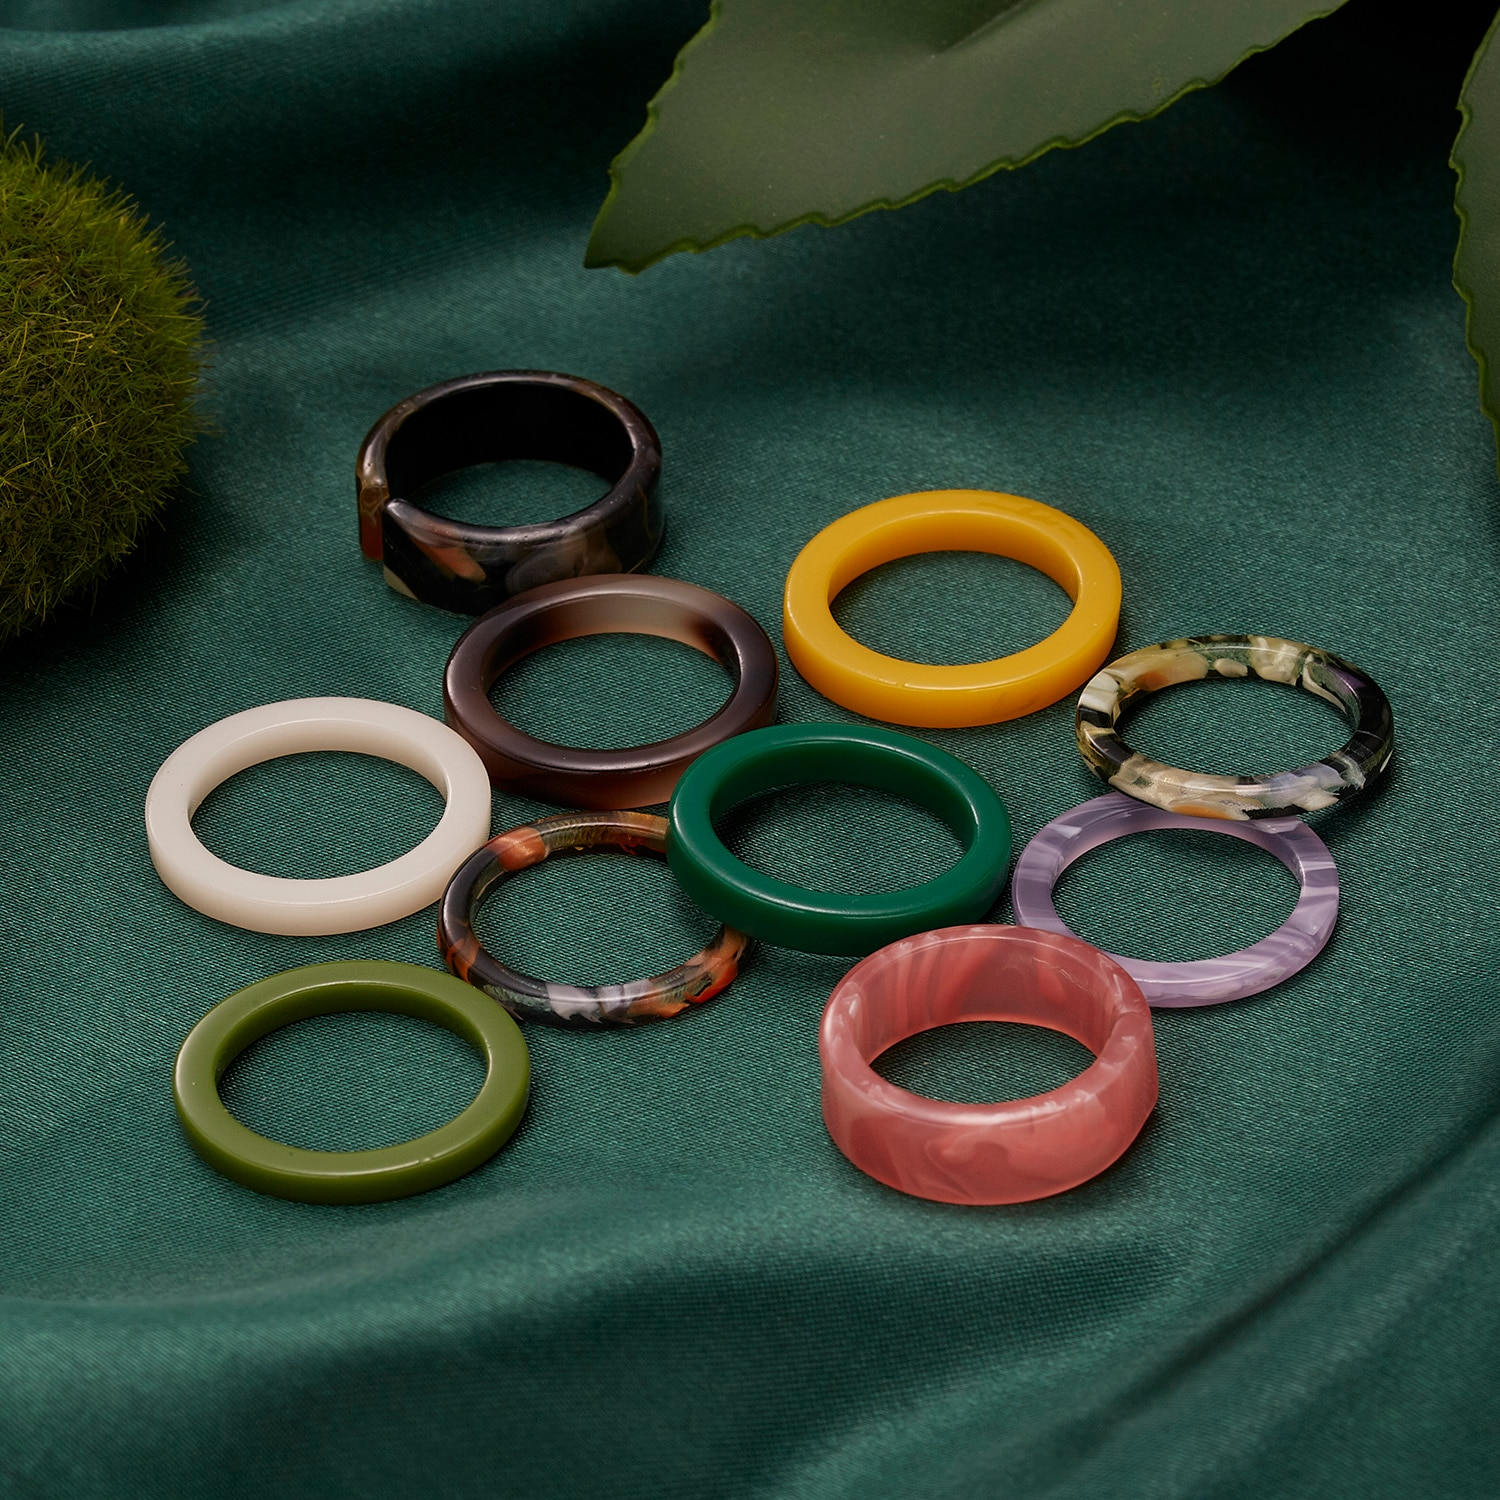 aliexpress.com - 10 Pcs/Lot Mixed Color Rings New Trendy Korean Simple Colorful Resin Finger Rings Set For Women Party Jewelry Wholesale